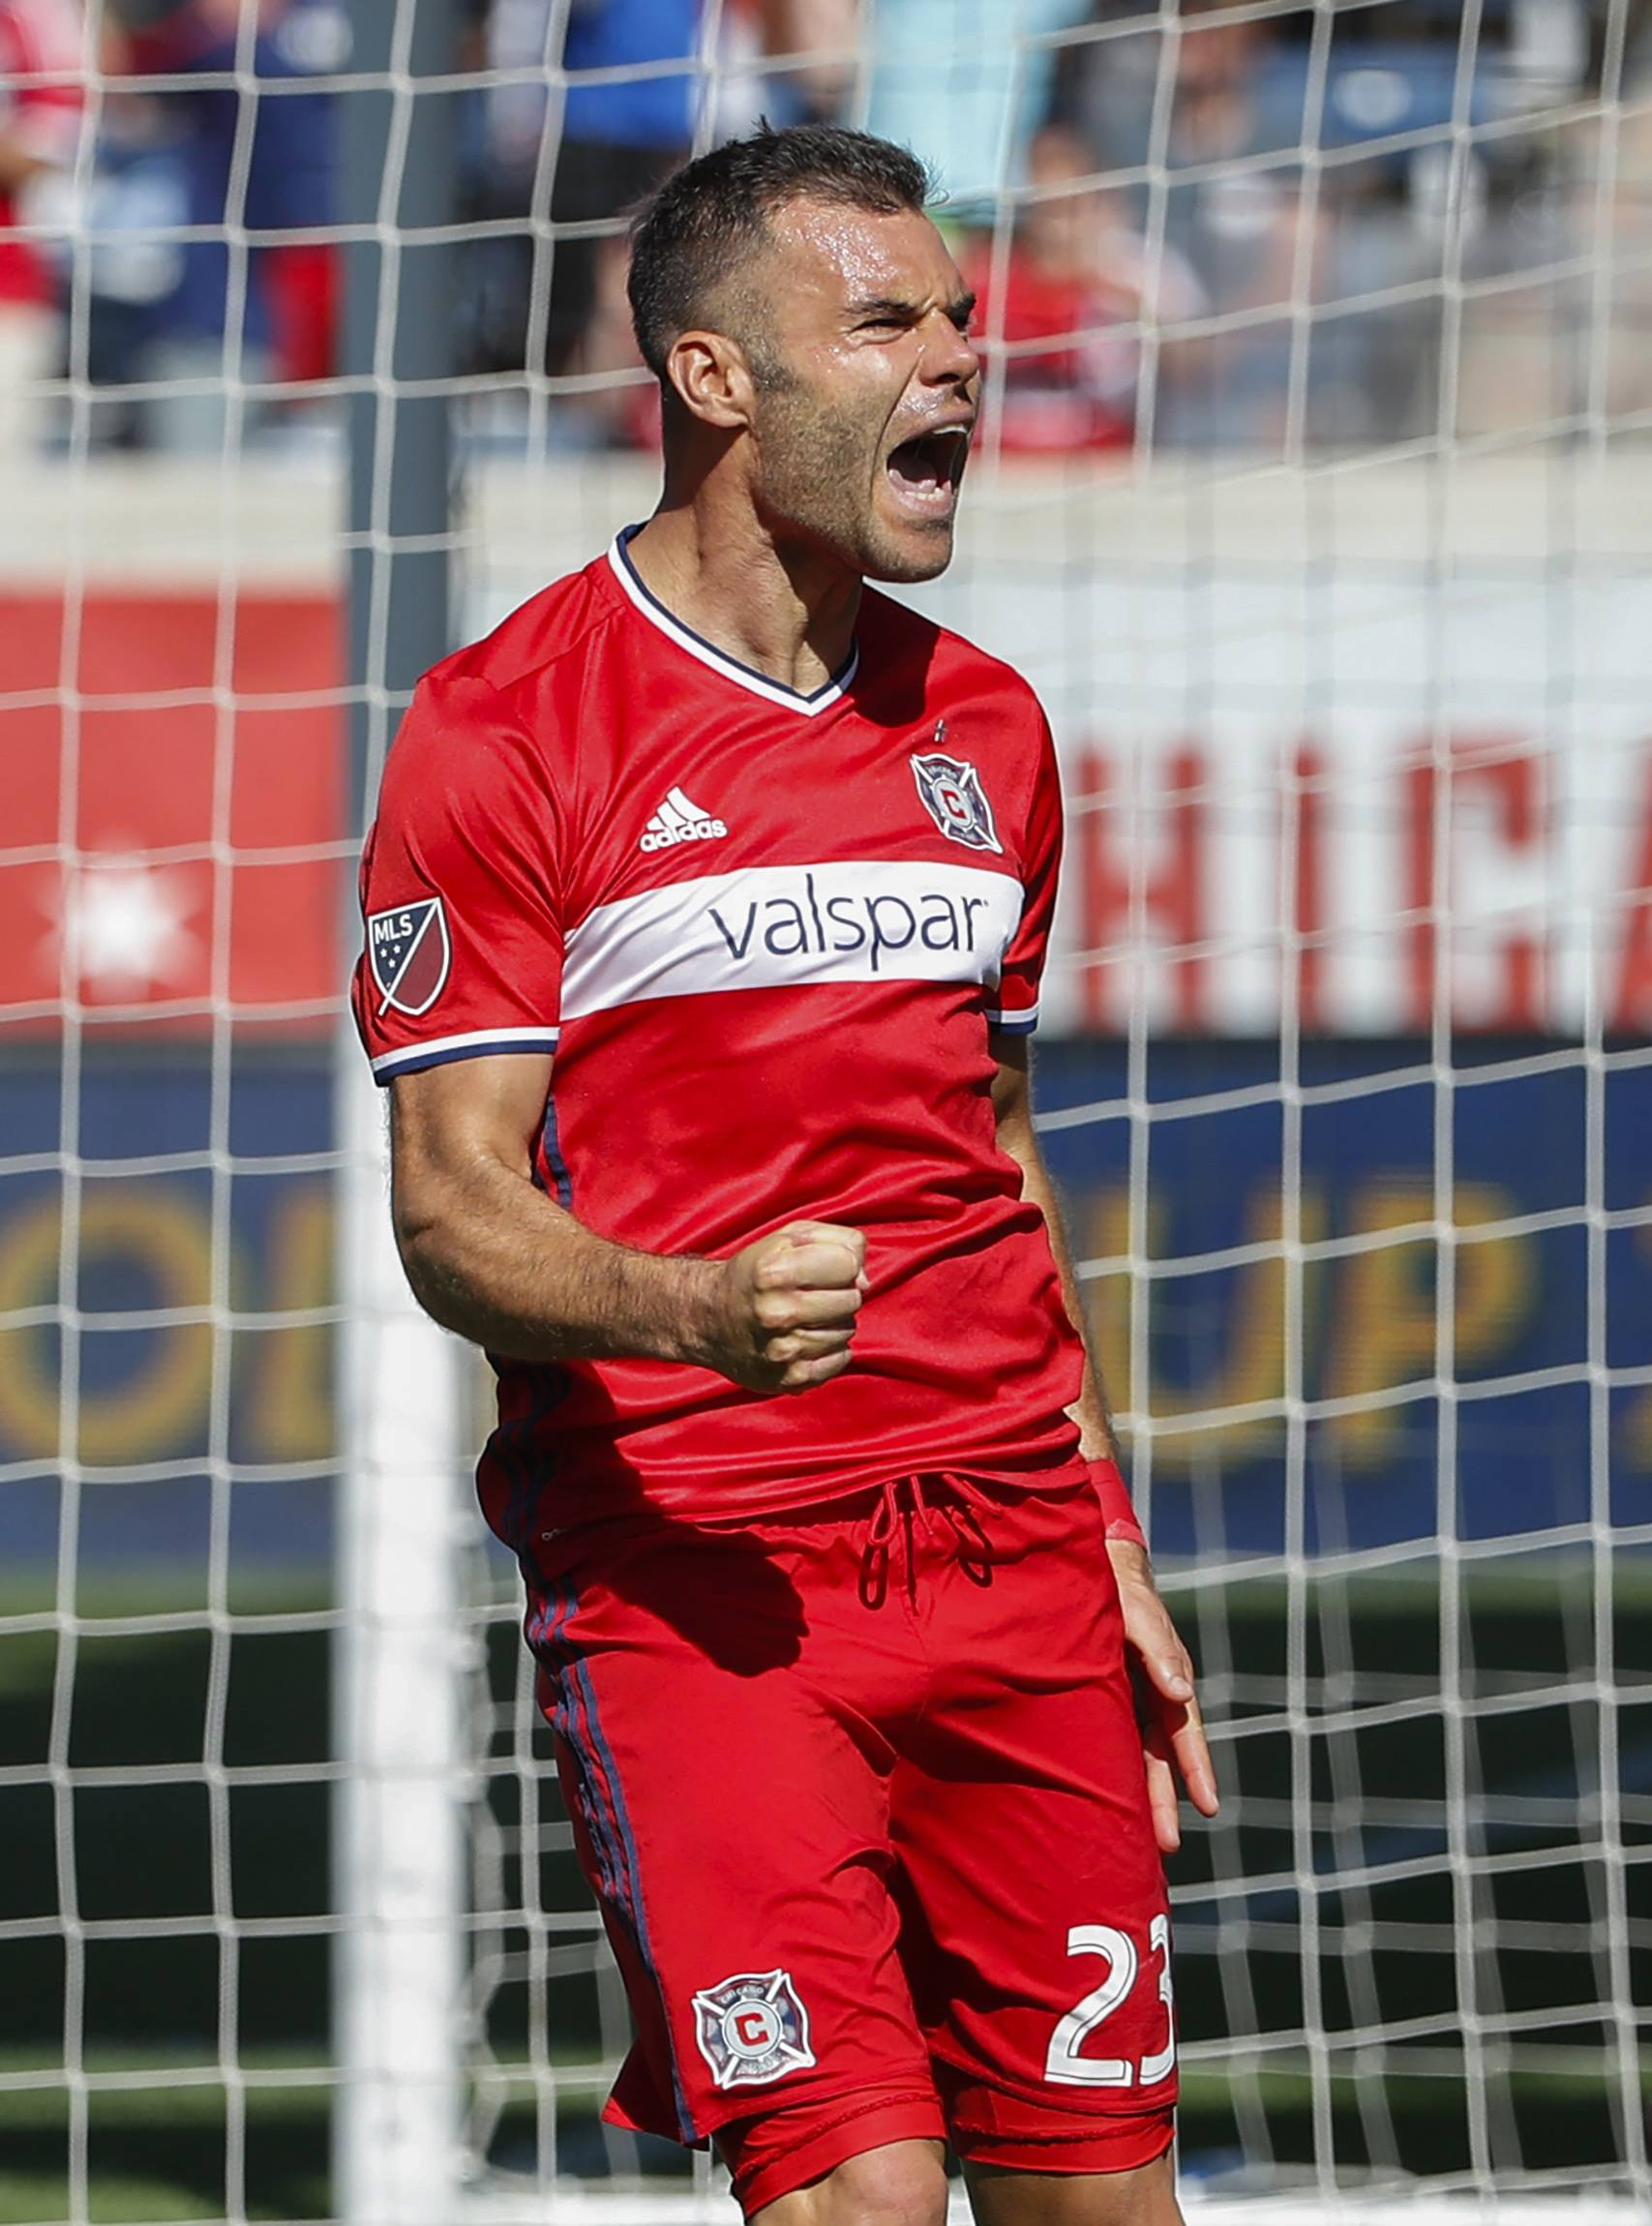 Chicago Fire forward Nemanja Nikolic celebrates after scoring on a penalty kick against Atlanta United goalkeeper Alec Kann during the second half of an MLS soccer match, Saturday, June 10, 2017, in Bridgeview, Ill.